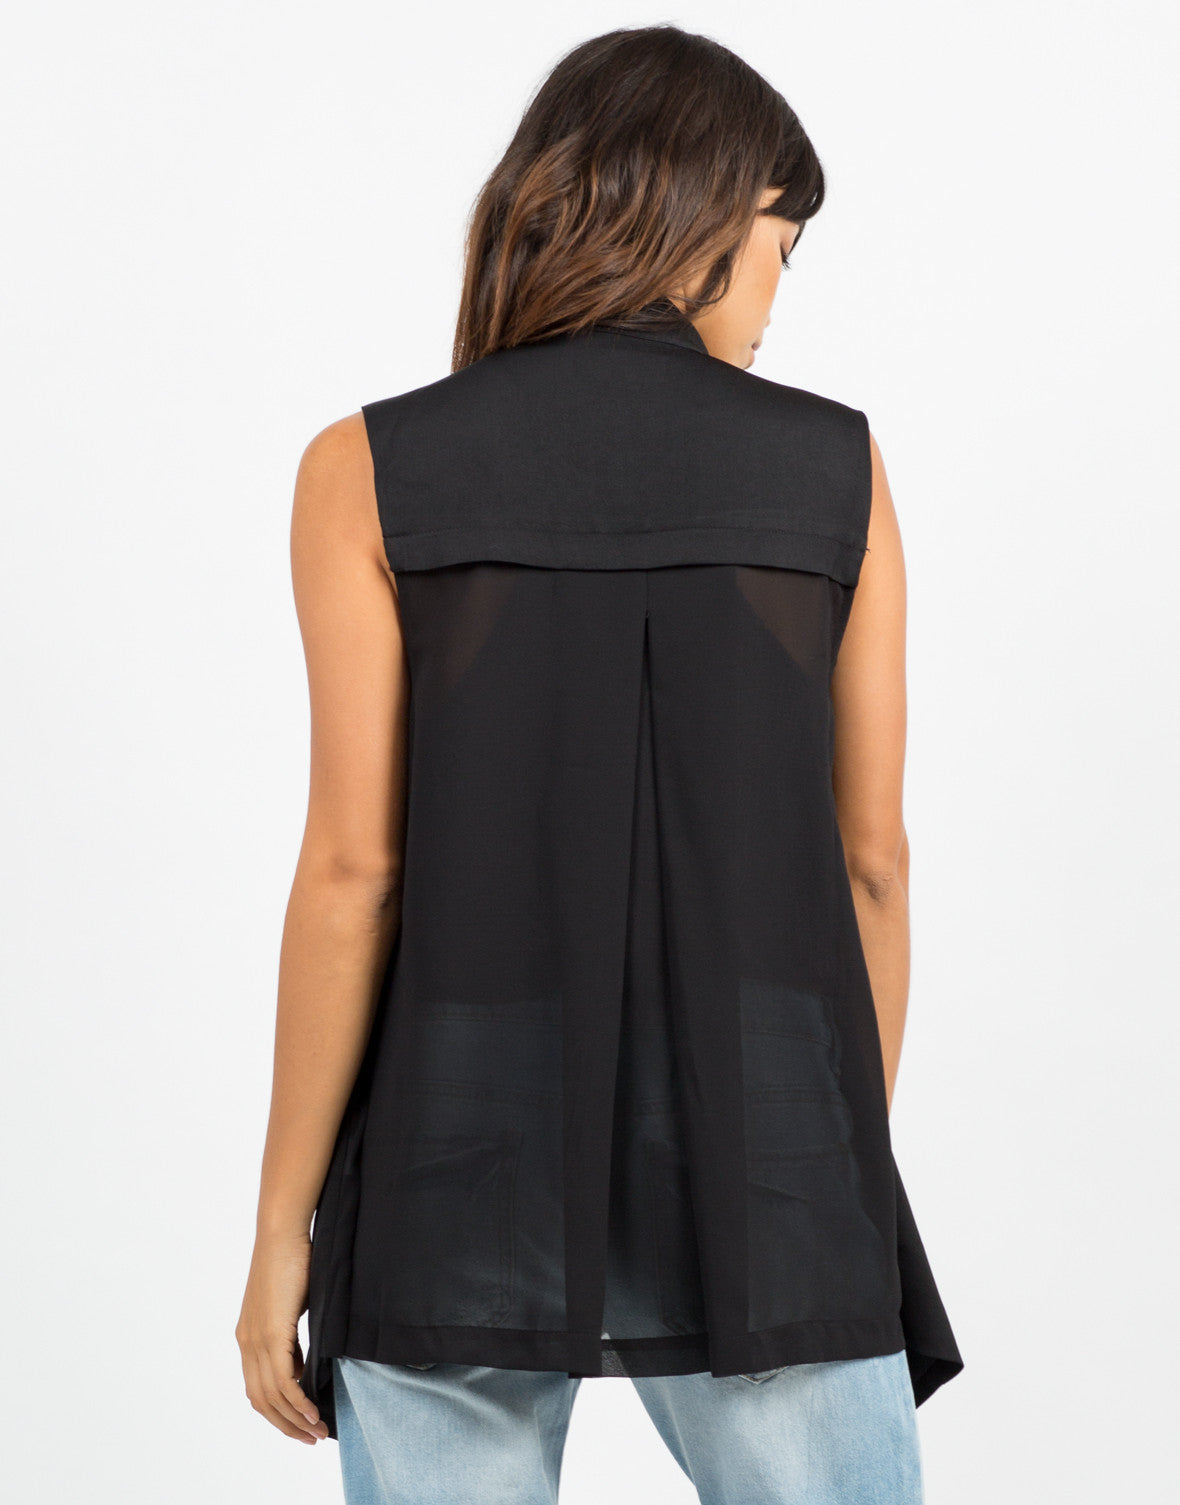 Back View of Chiffon Back Sleeveless Blazer